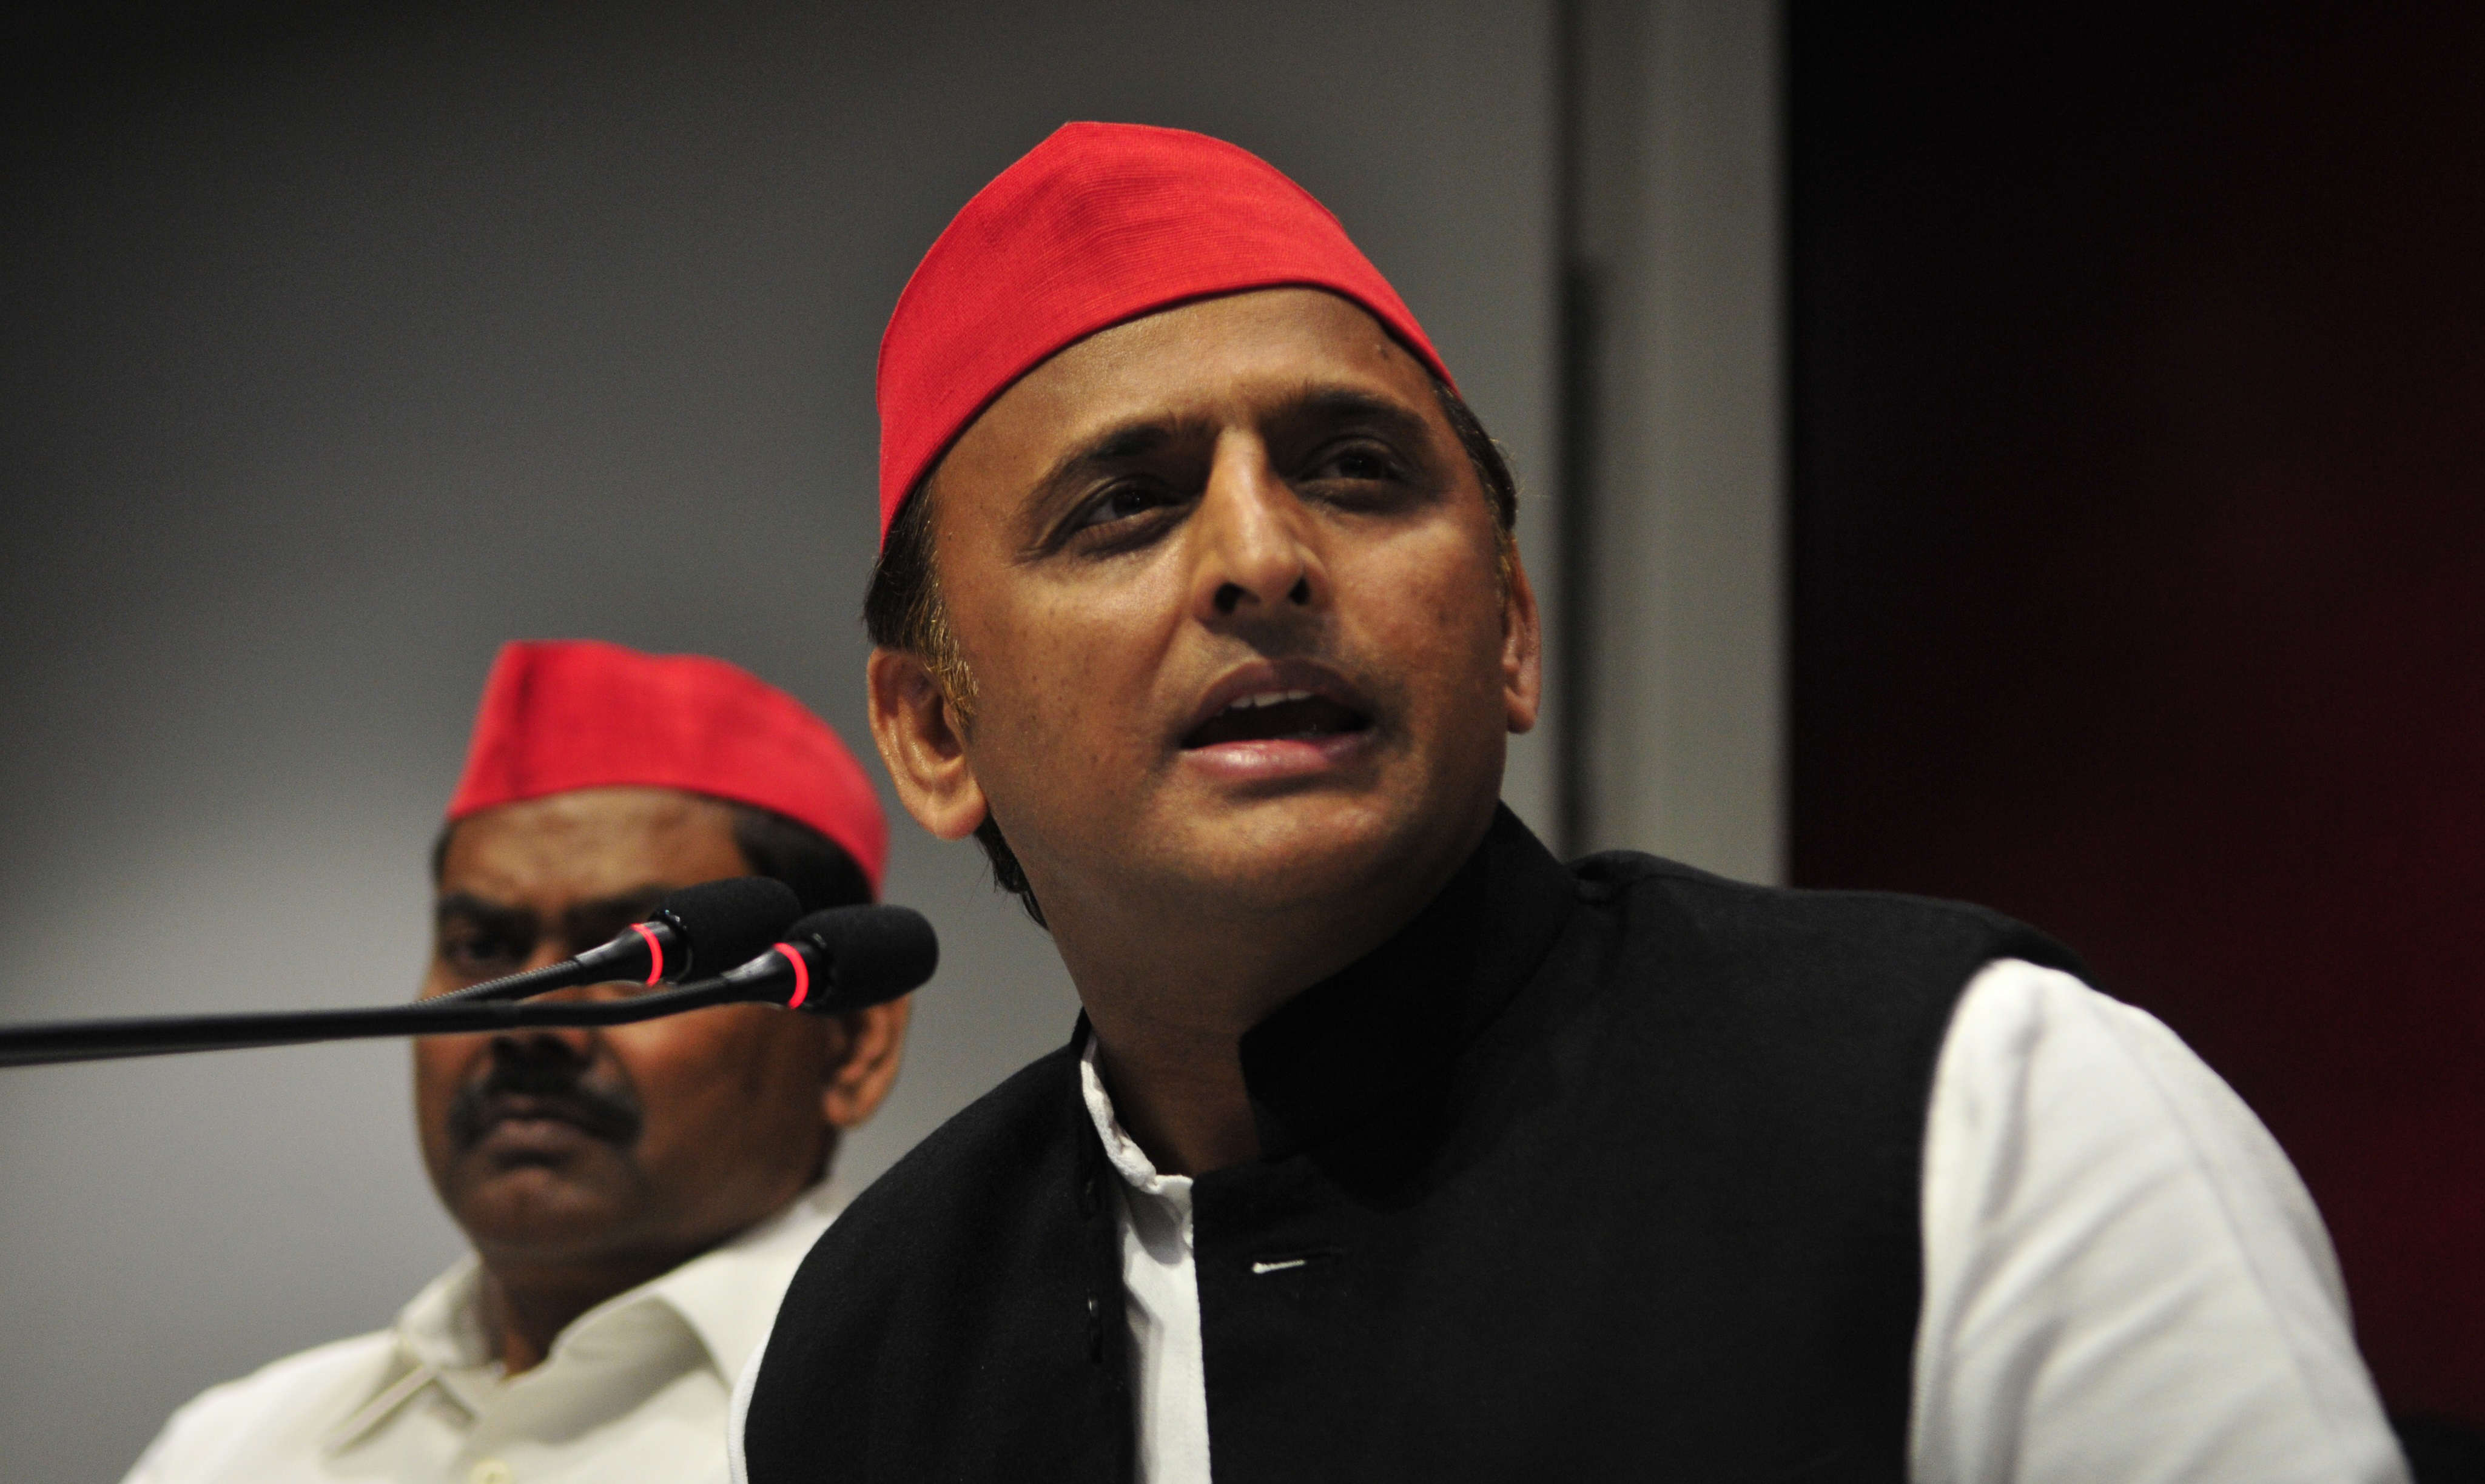 Slide 12 of 31: LUCKNOW, INDIA - FEBRUARY 12: National President of Samajwadi Party Akhilesh Yadav addresses a press conference after he was stopped by police at Chaudhary Charan Singh Airport to prevent him from attending Allahabad event, on February 12, 2019 in Lucknow, India. (Photo by Deepak Gupta/Hindustan Times via Getty Images)